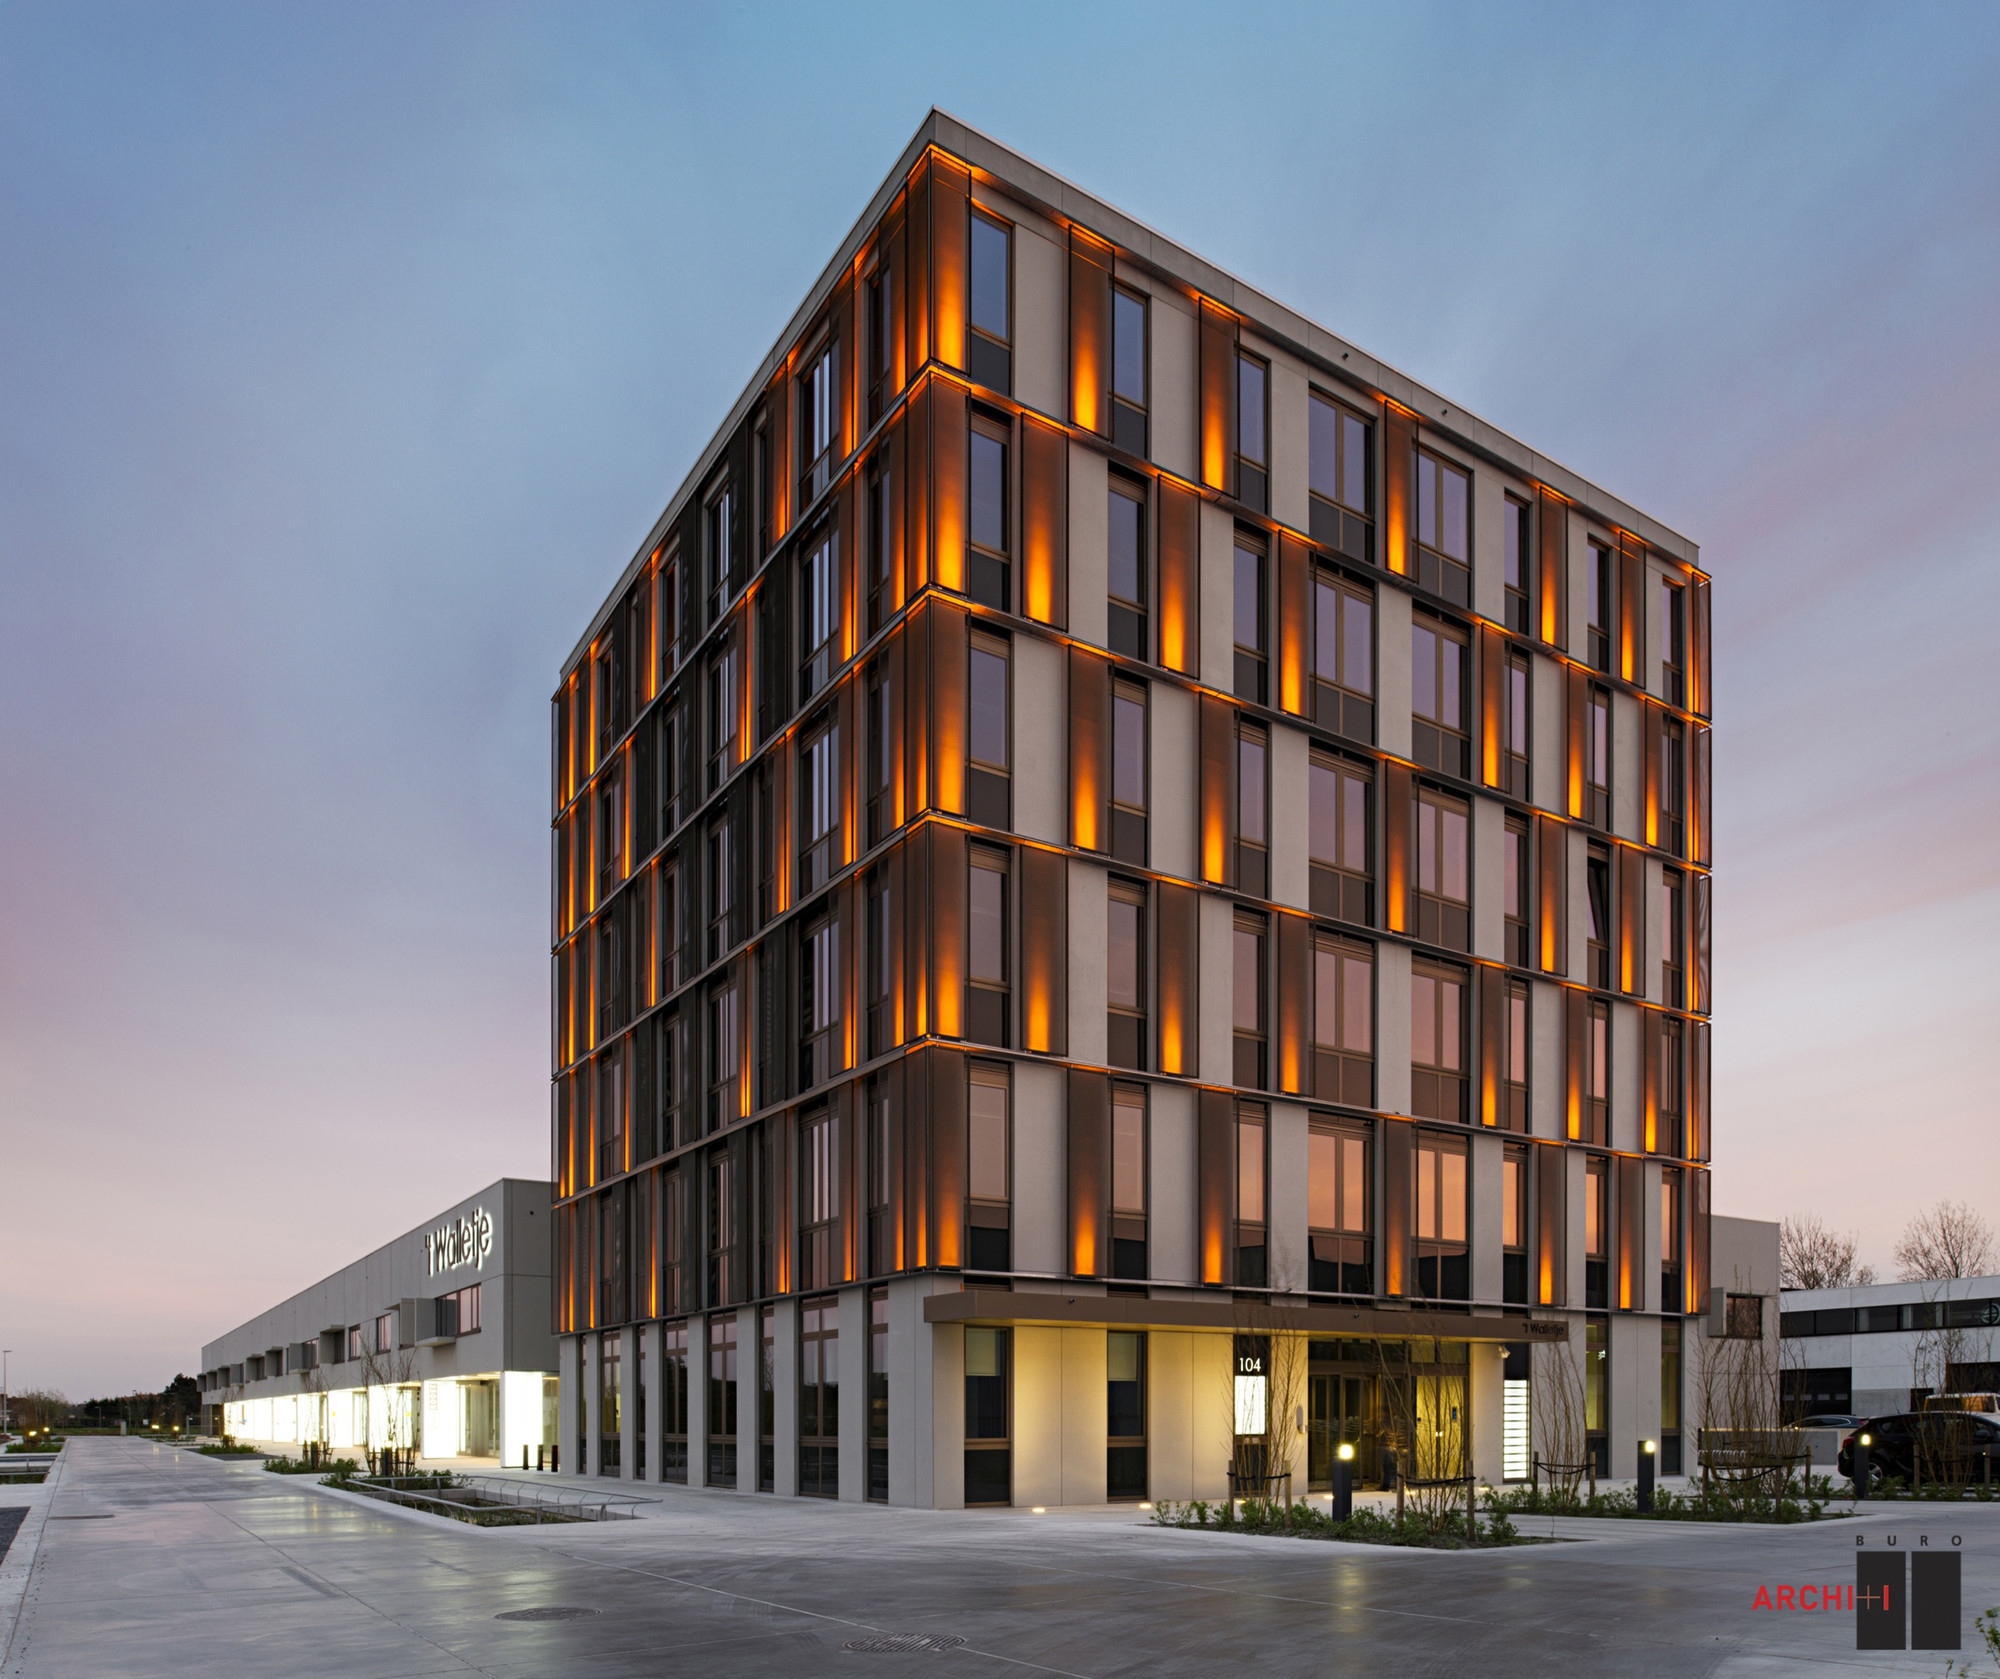 Business complex building t walletje knokke heist buro for Architecture buro